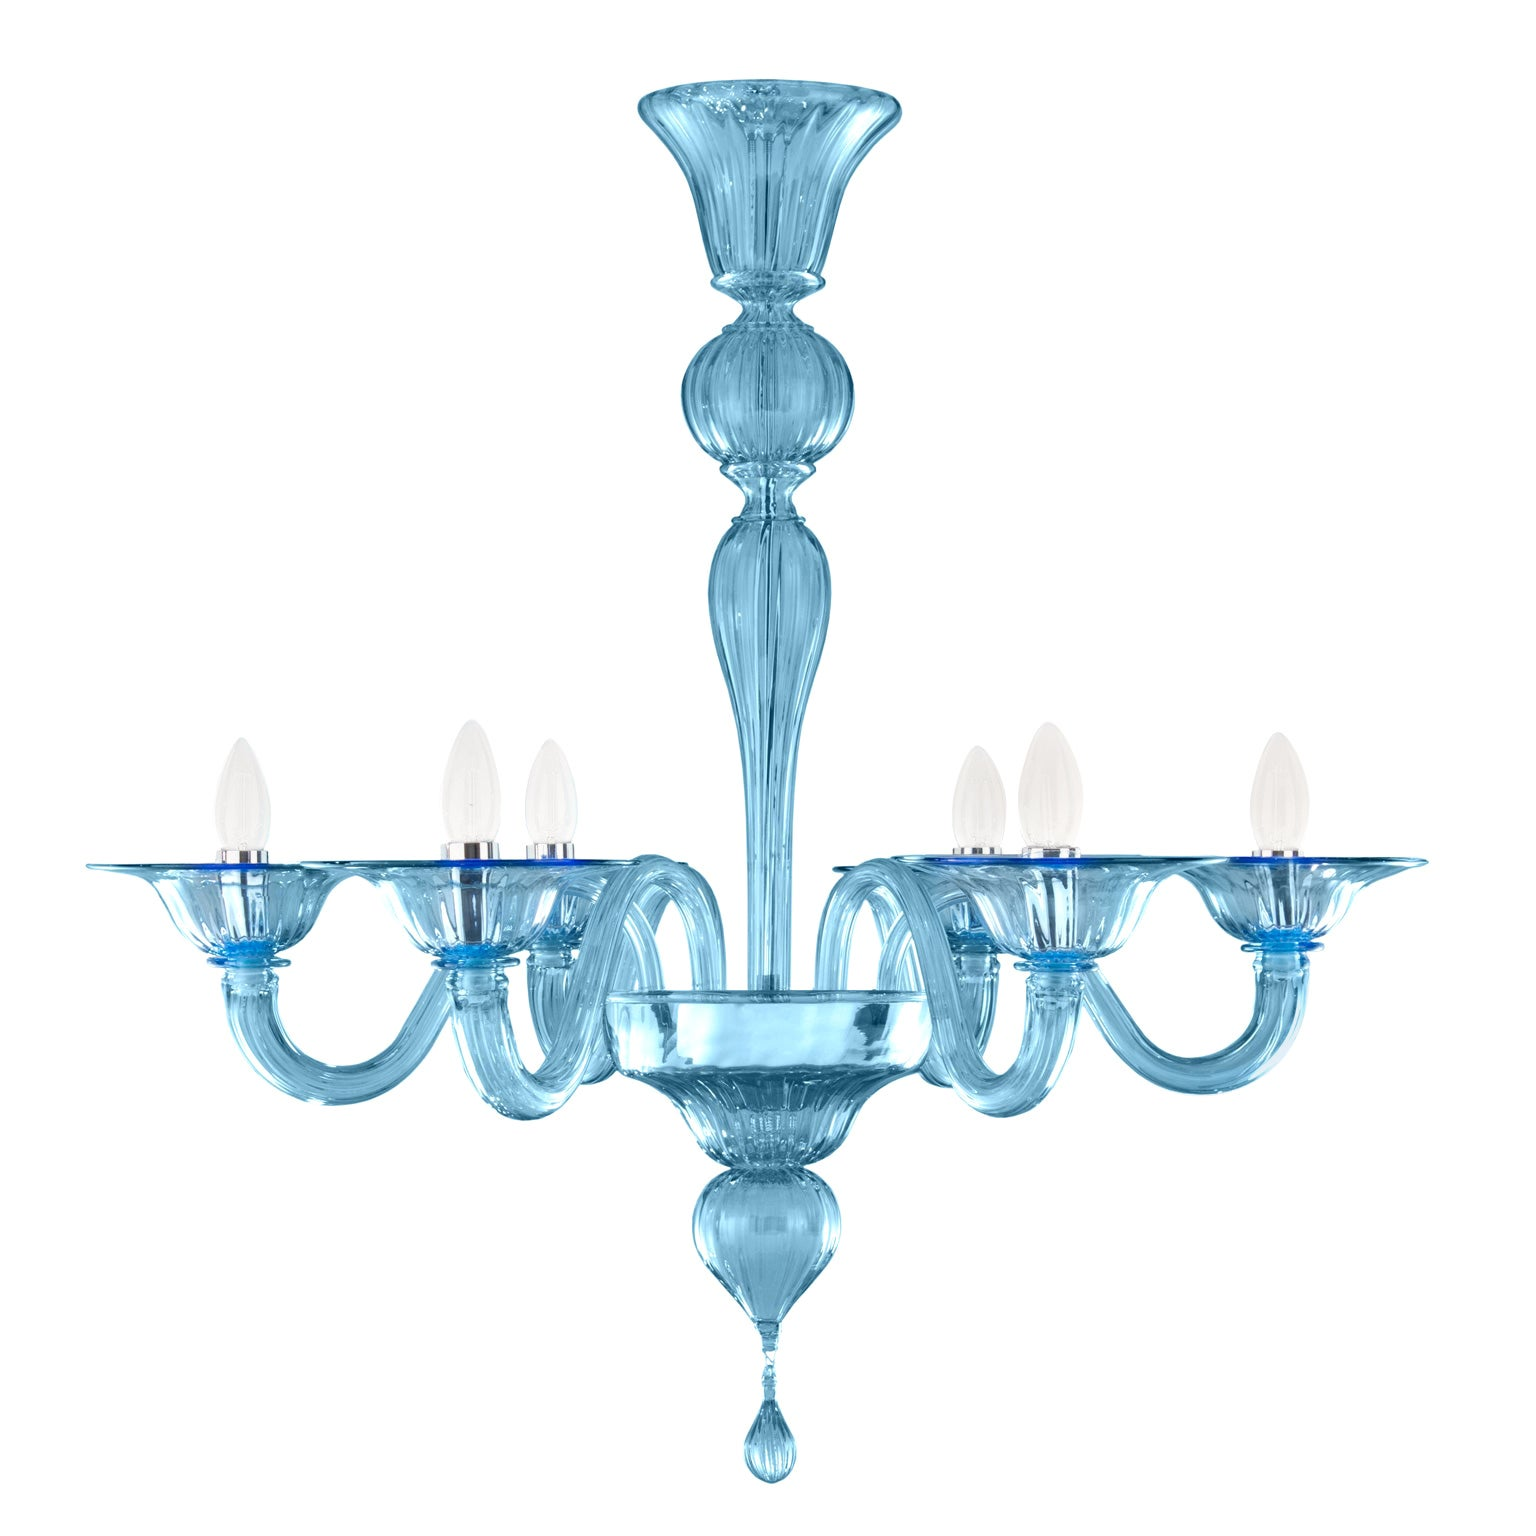 21st Century Chandelier, 6 arms Light Blue Murano Glass by Multiforme